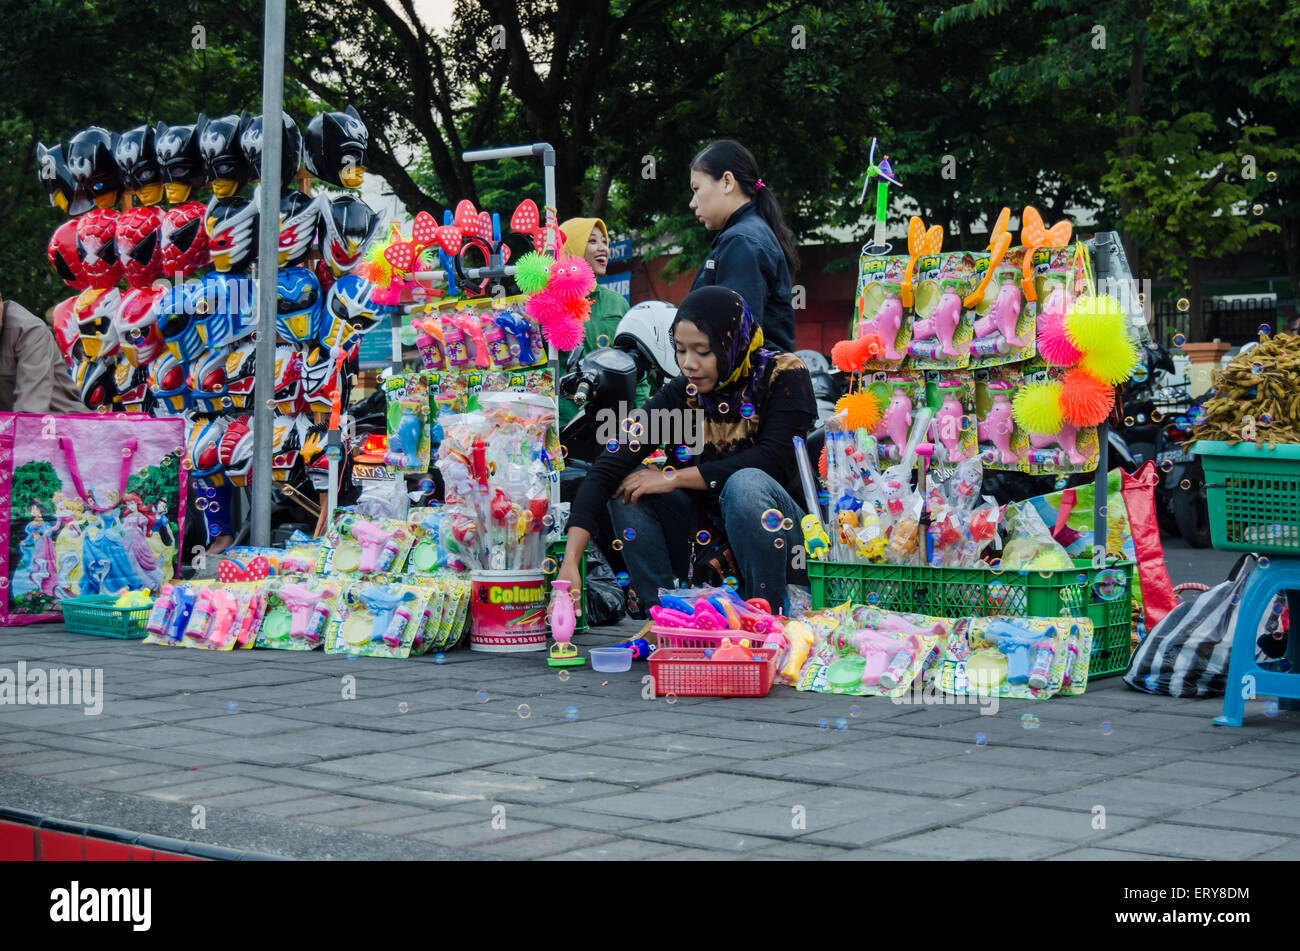 toy seller in the pavement - Stock Image